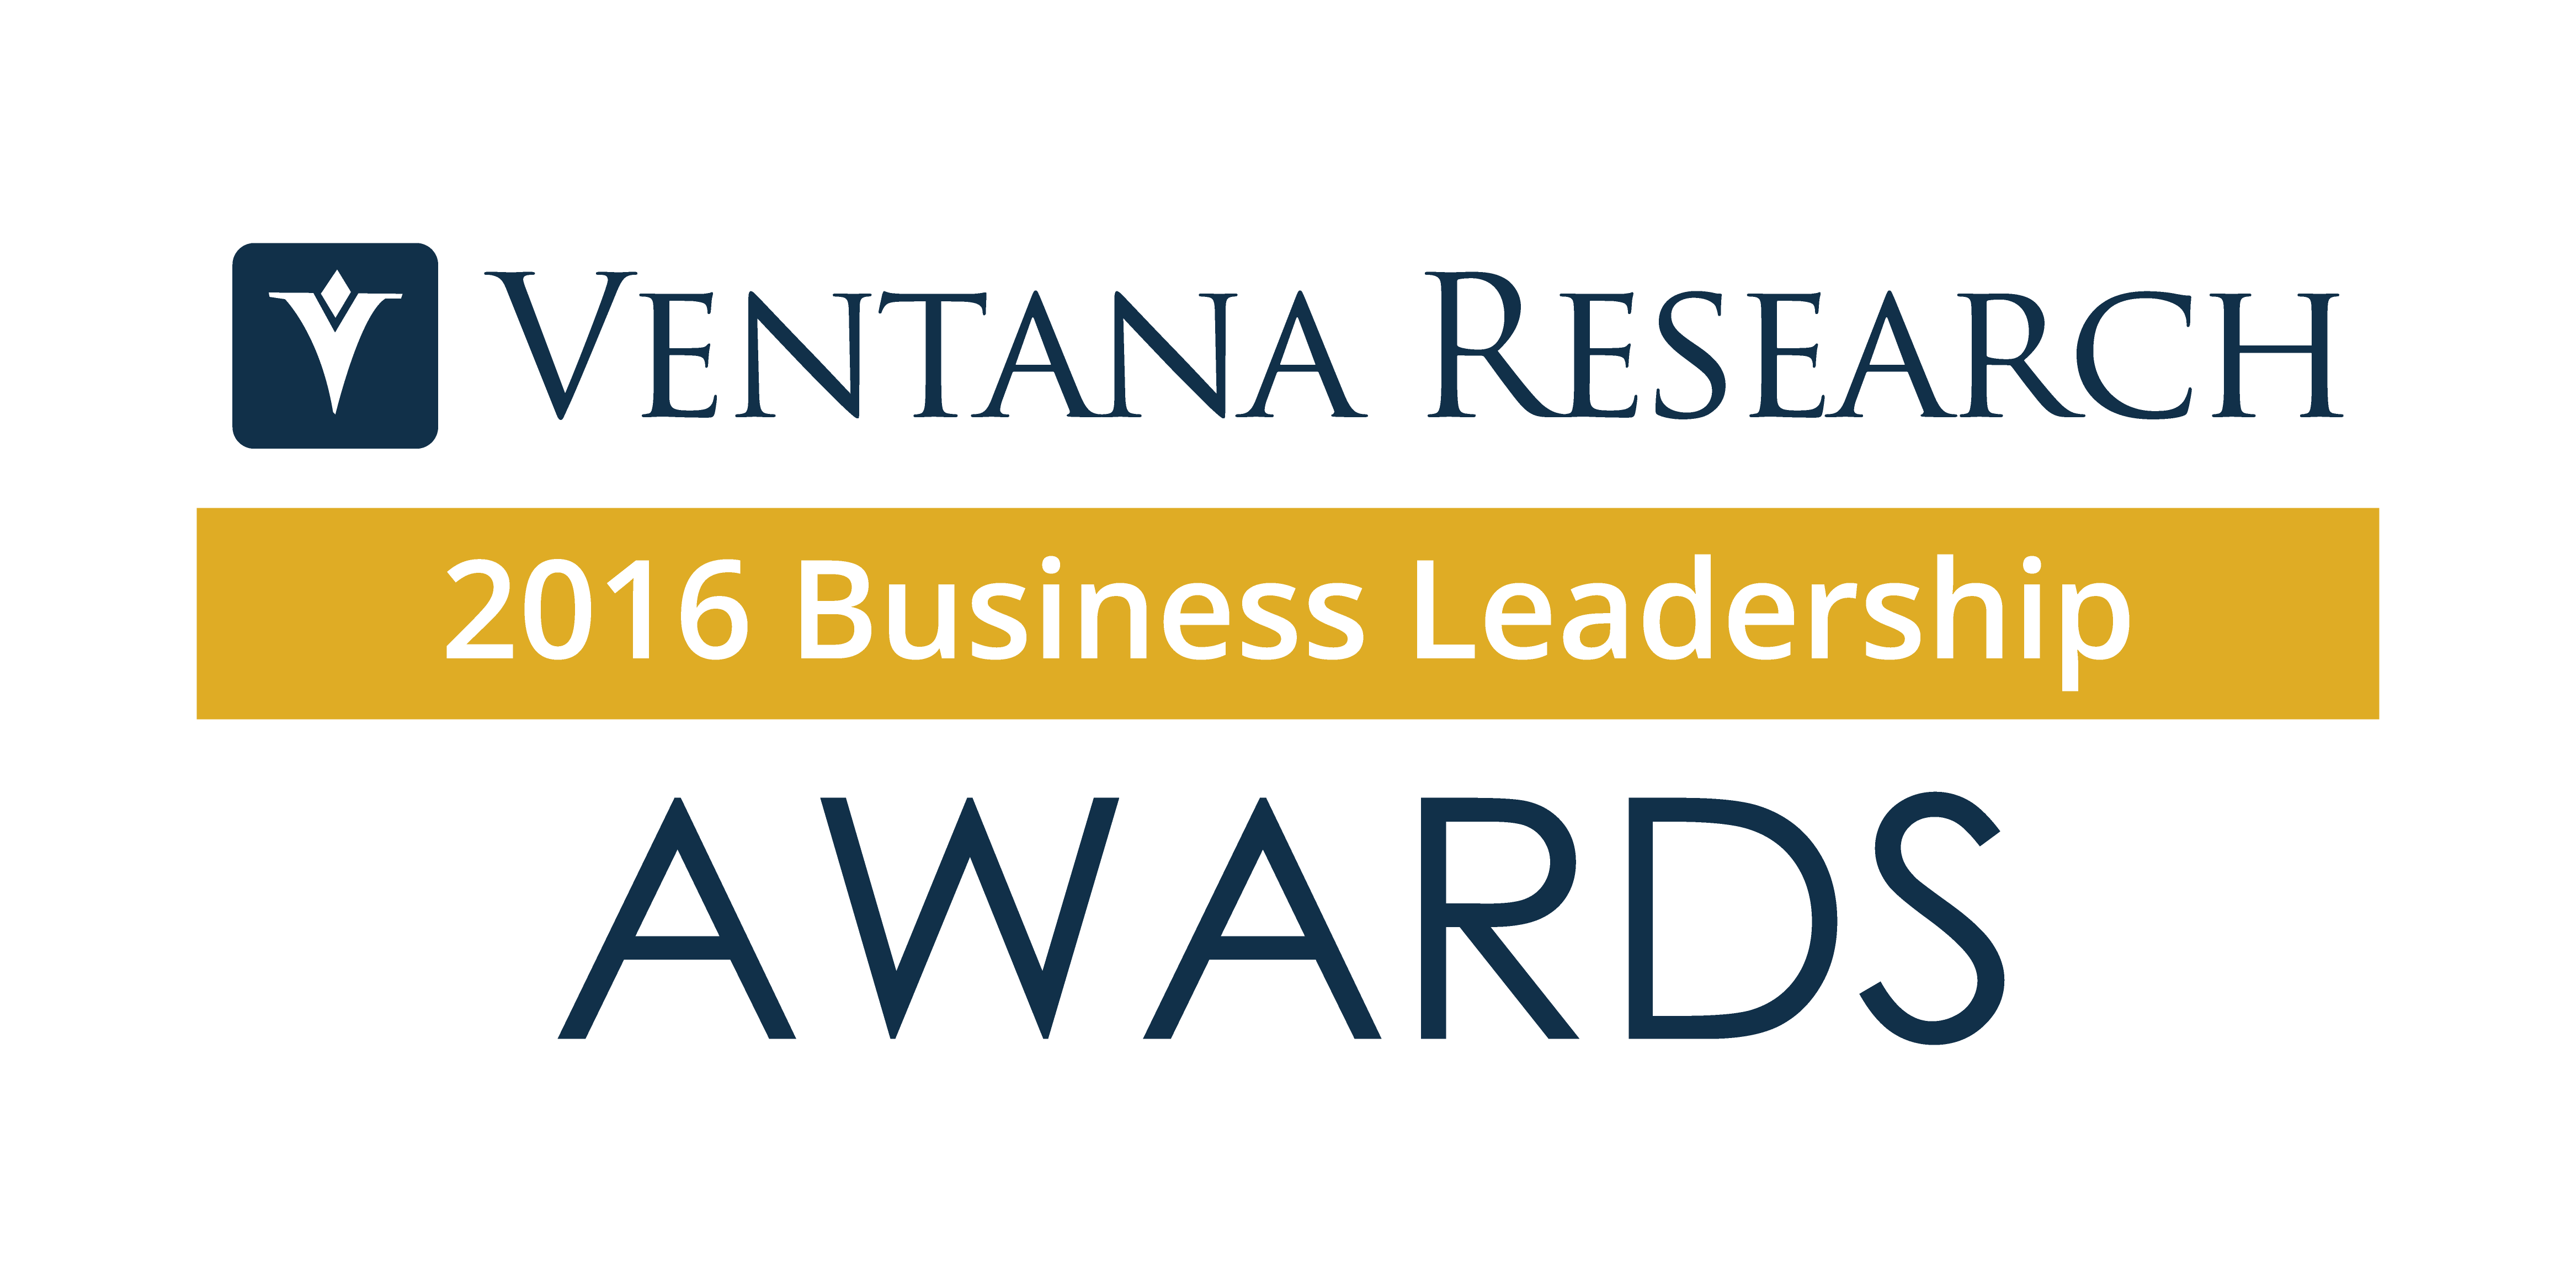 VentanaResearch_BusinessLeadershipAwards-2016.png